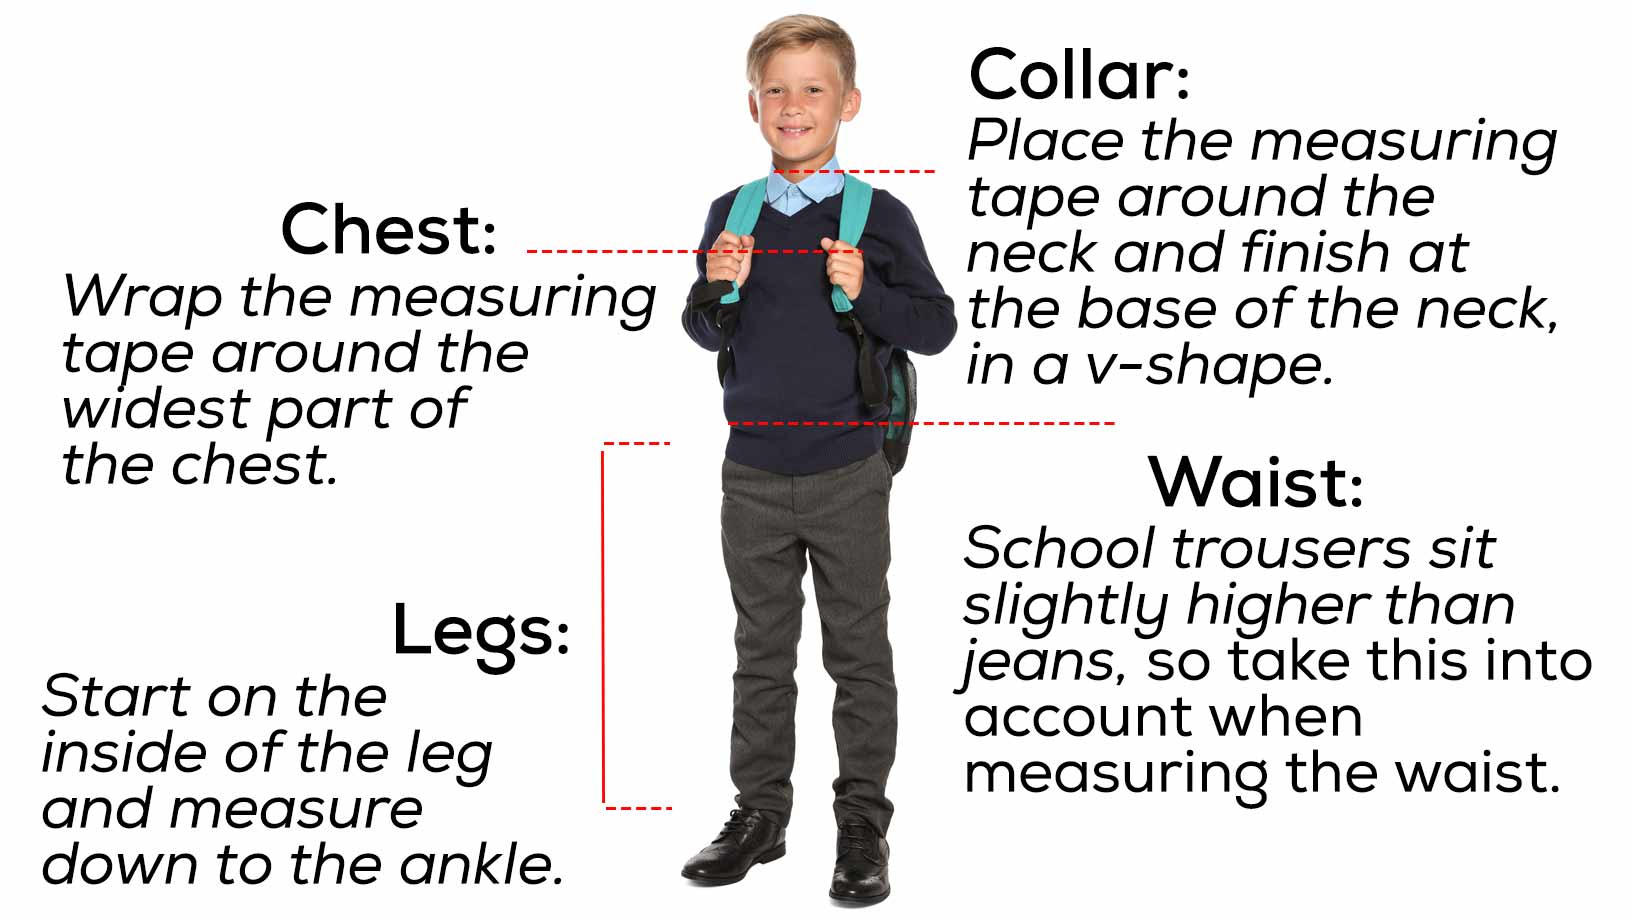 A young boy in his school uniform, with pointers outlining how to properlt measure boys uniforms